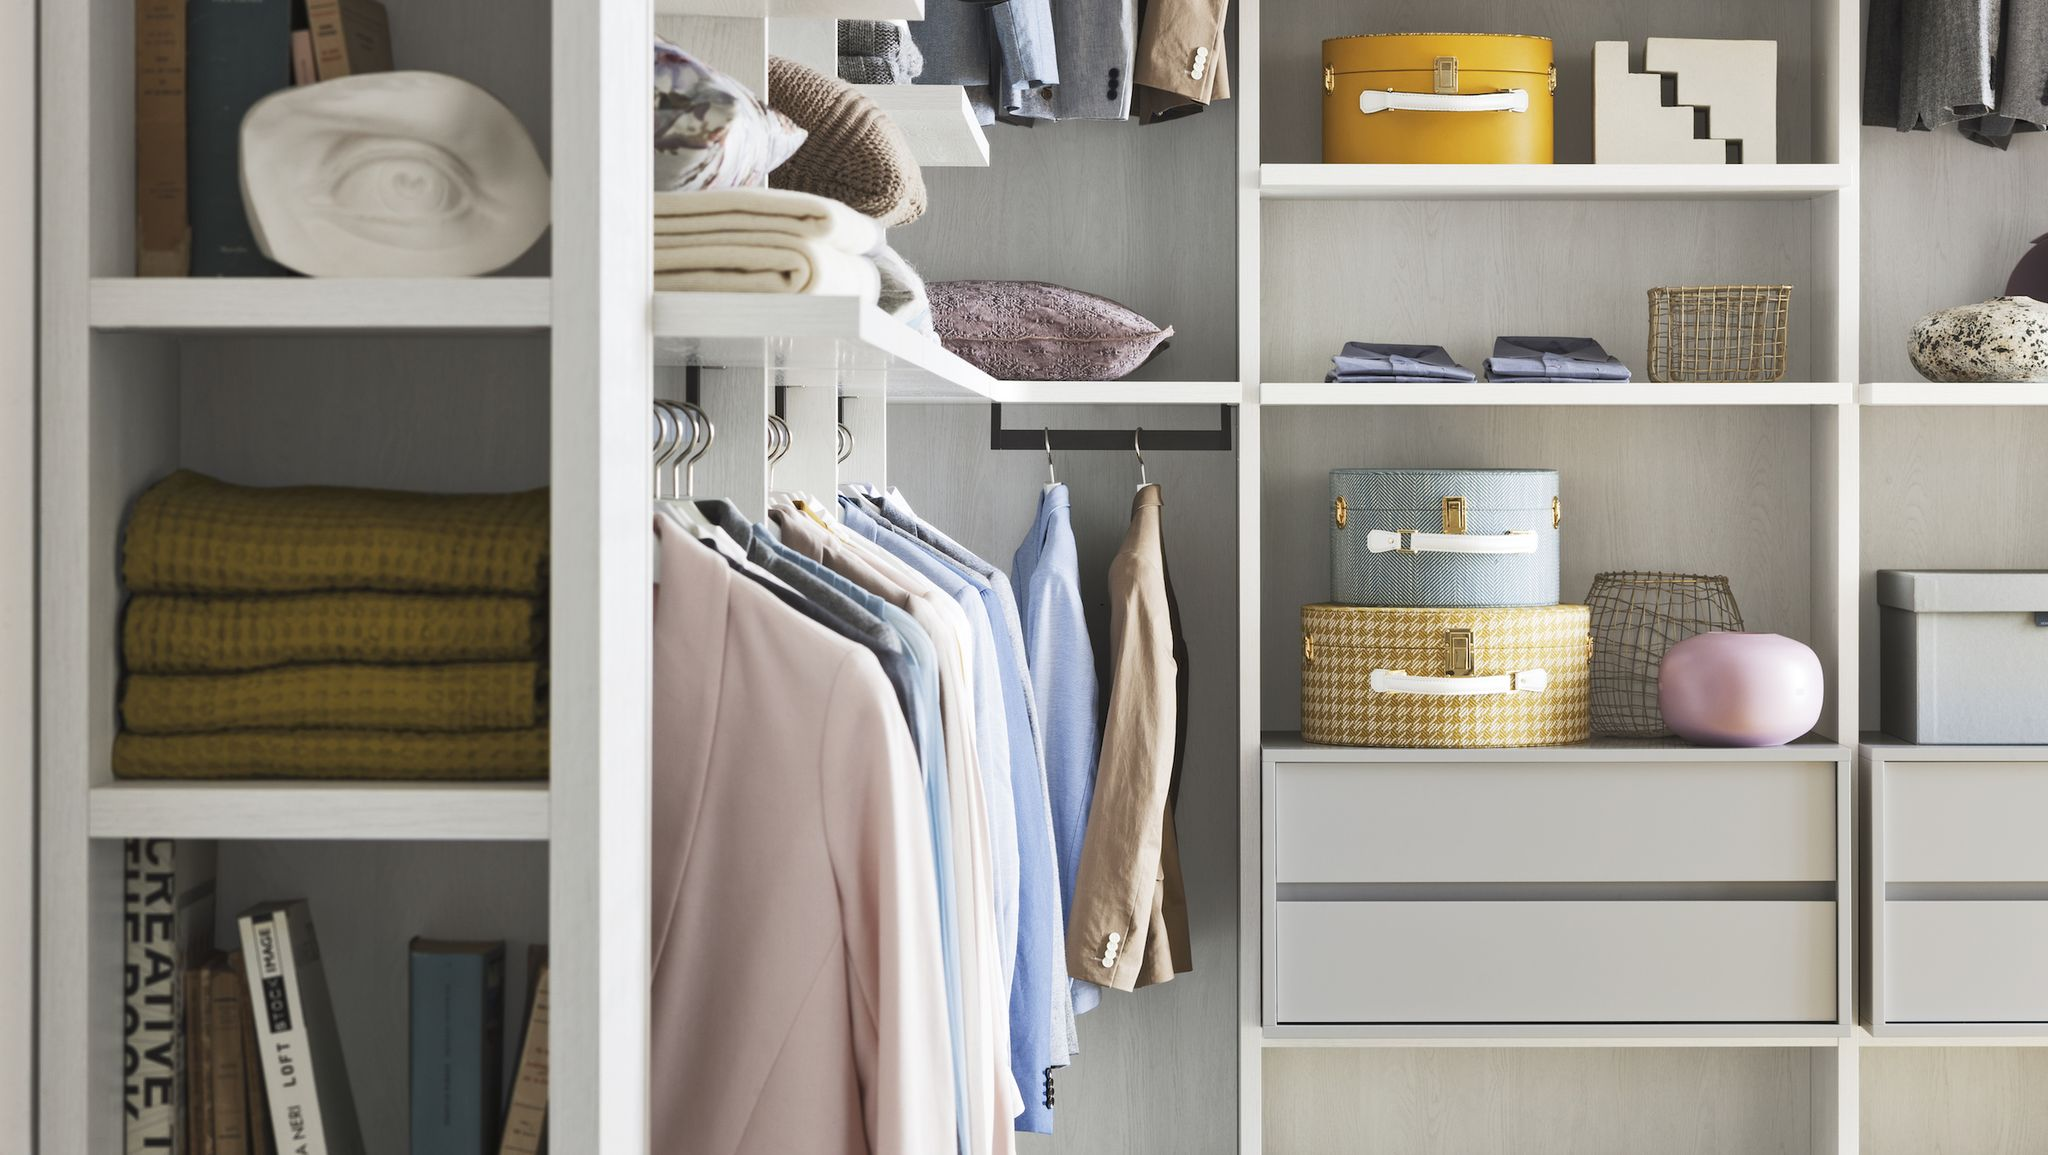 9 walk-in wardrobe ideas to help you create your dream closet